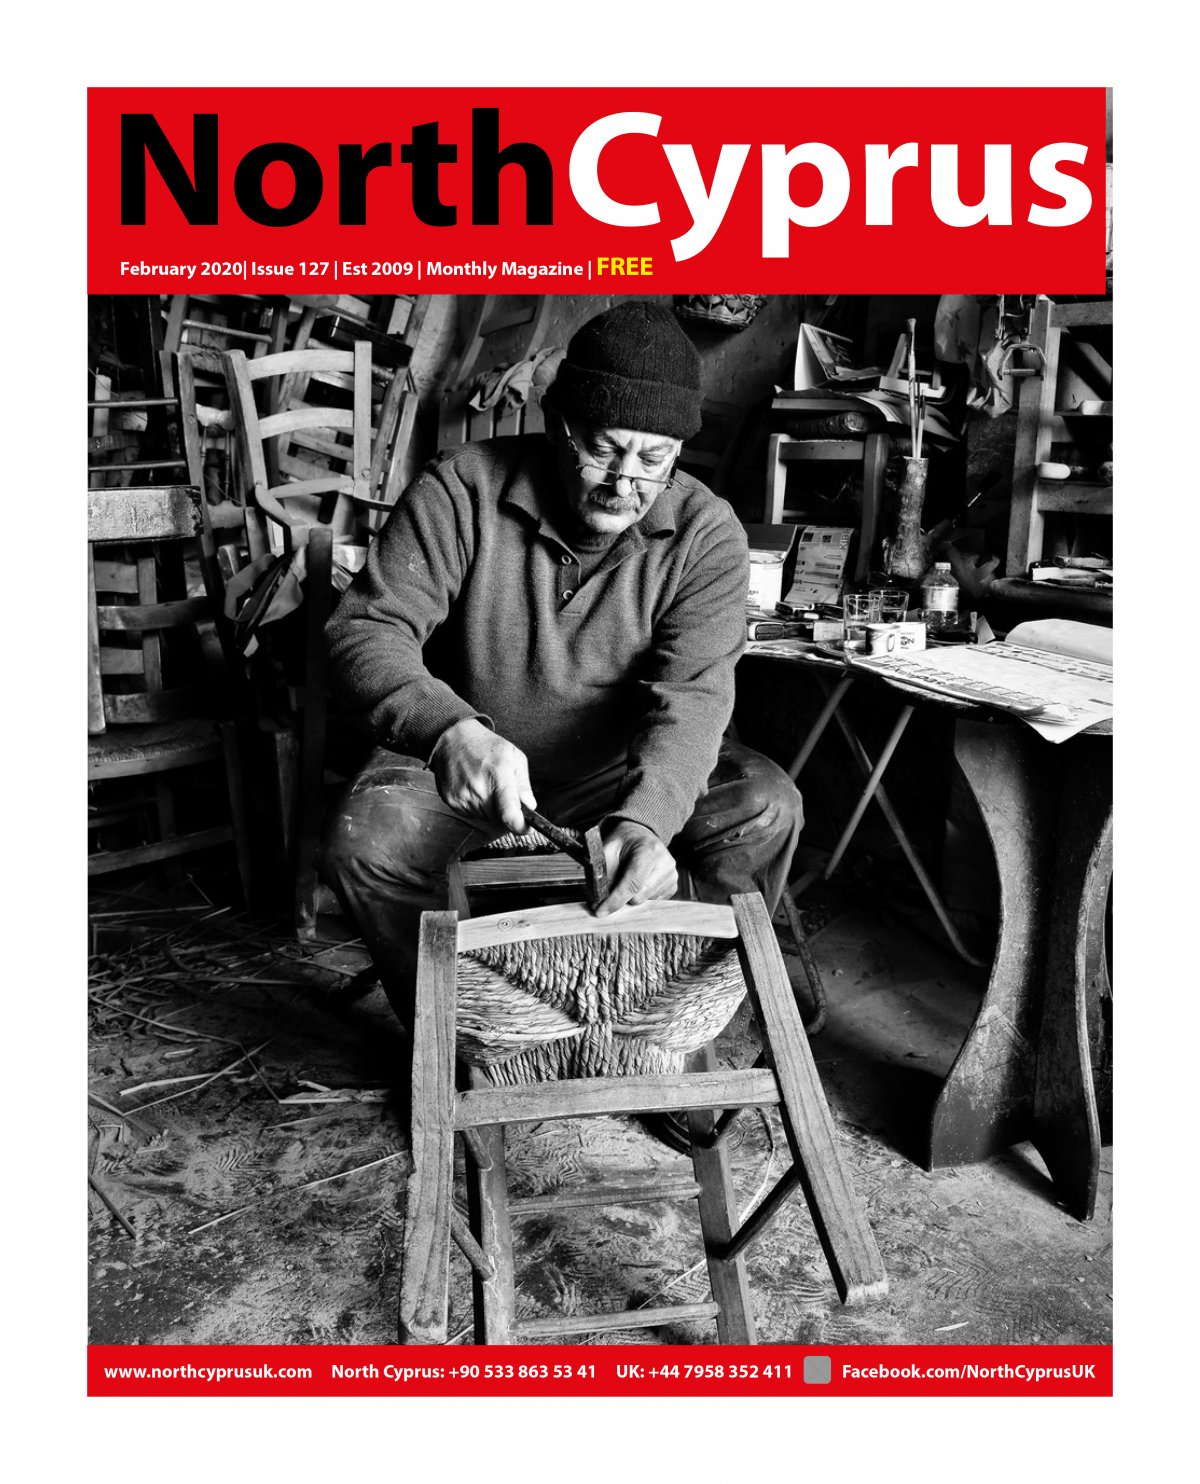 North Cyprus UK - 08.02.2020 Manşeti